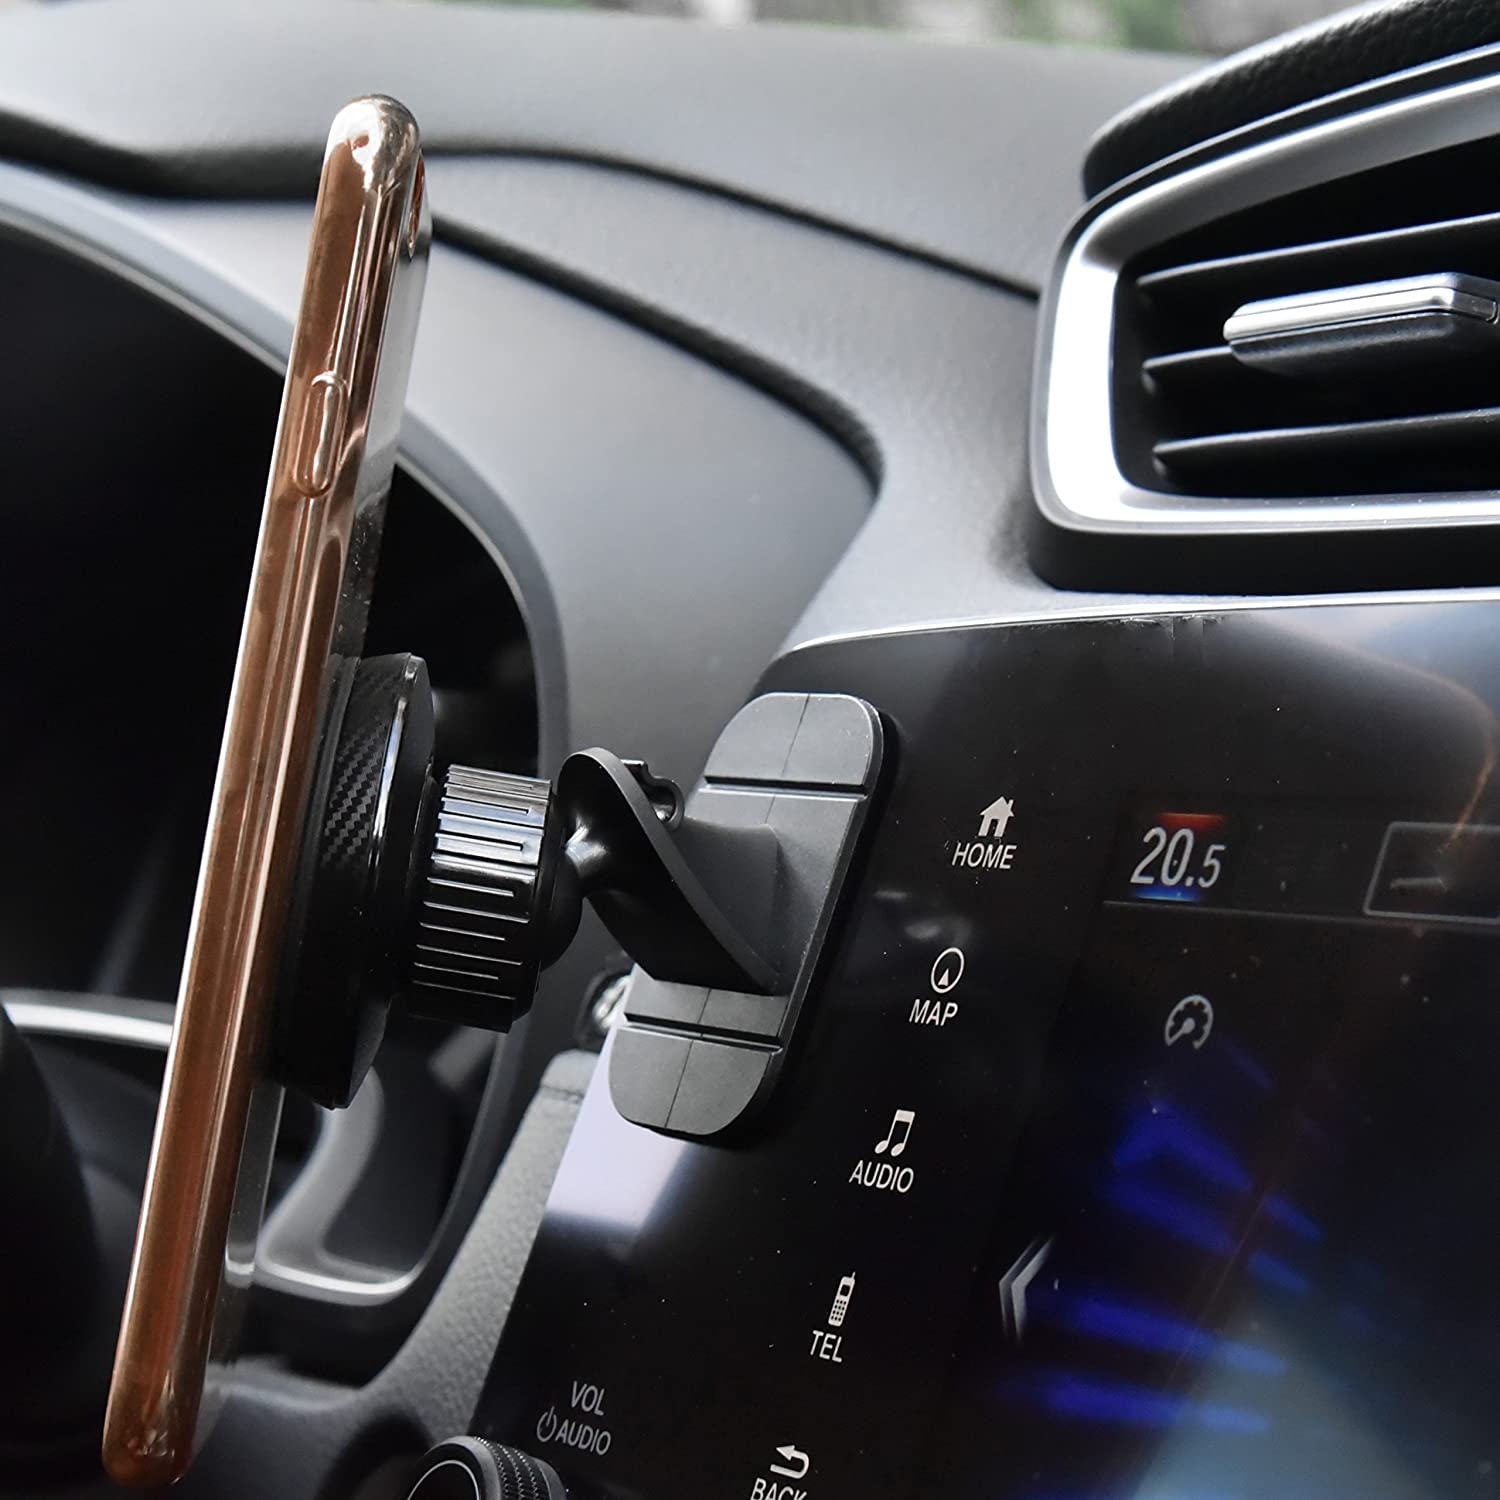 Magnetic Phone Car Mount APPS2Car Universal Cell Phone Holder for Car Built-in Amazing Powerful Magnets,2-in-1 Vent /& Dash Magnetic Phone Car Mount Wiiki-tech M03-T2-AV2S-Lib 6 Powerful Magnets